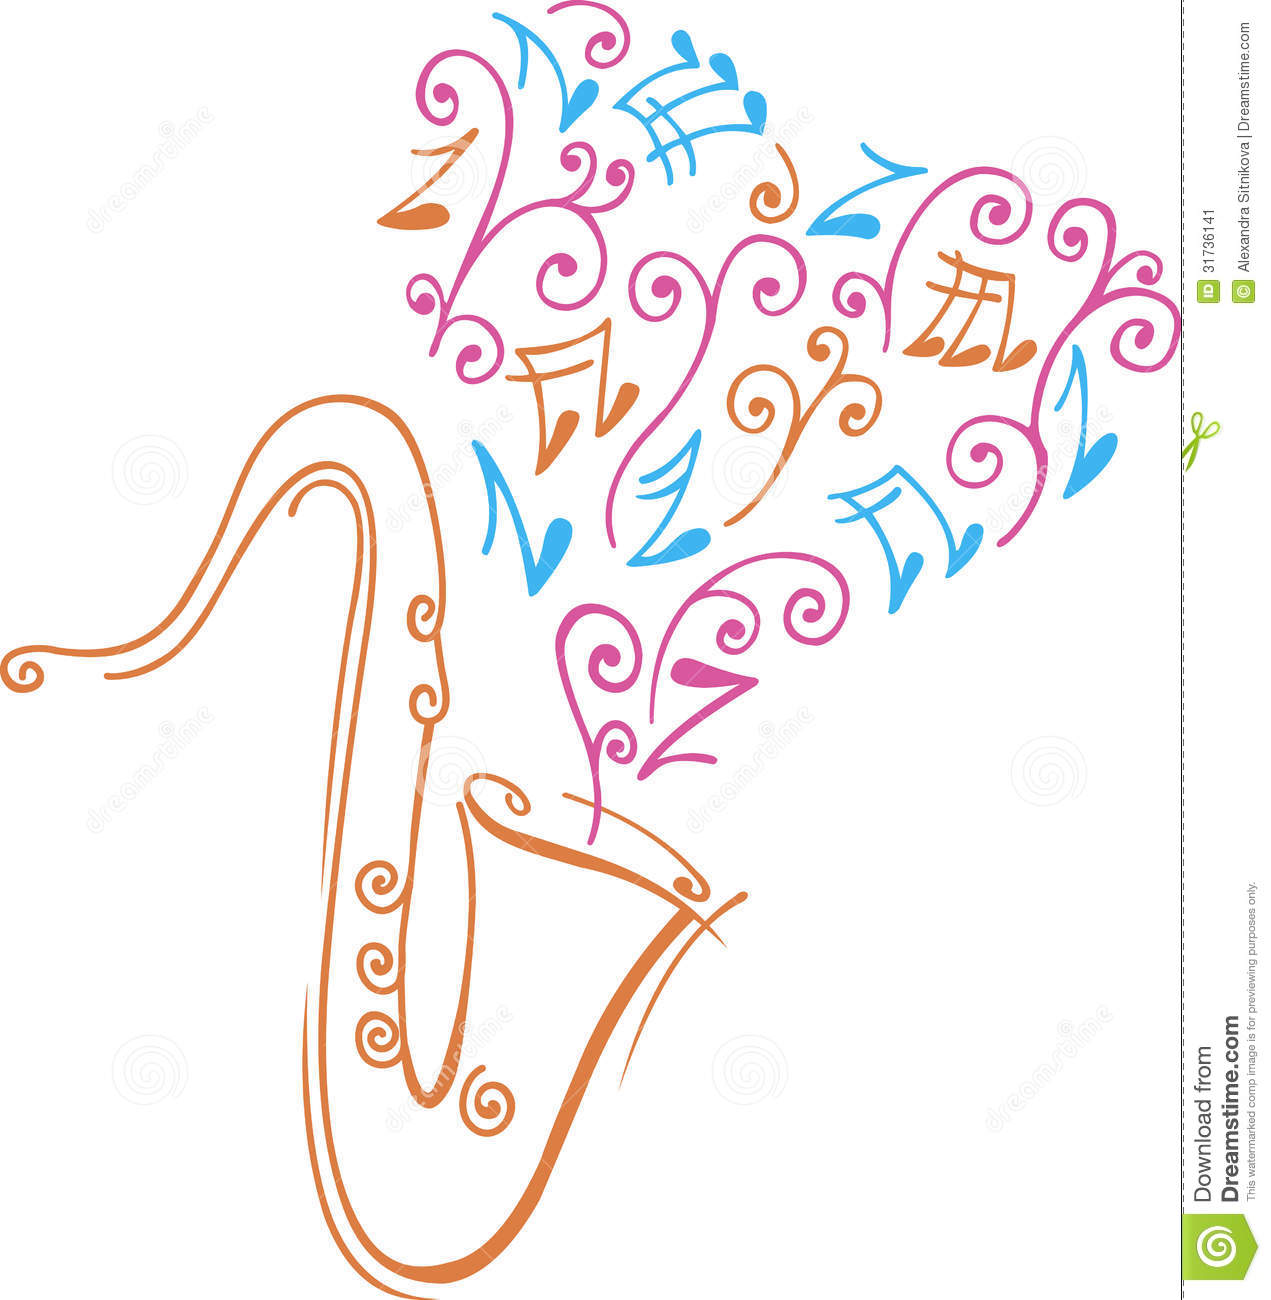 saxophone stock vector illustration of drawn music 31736141